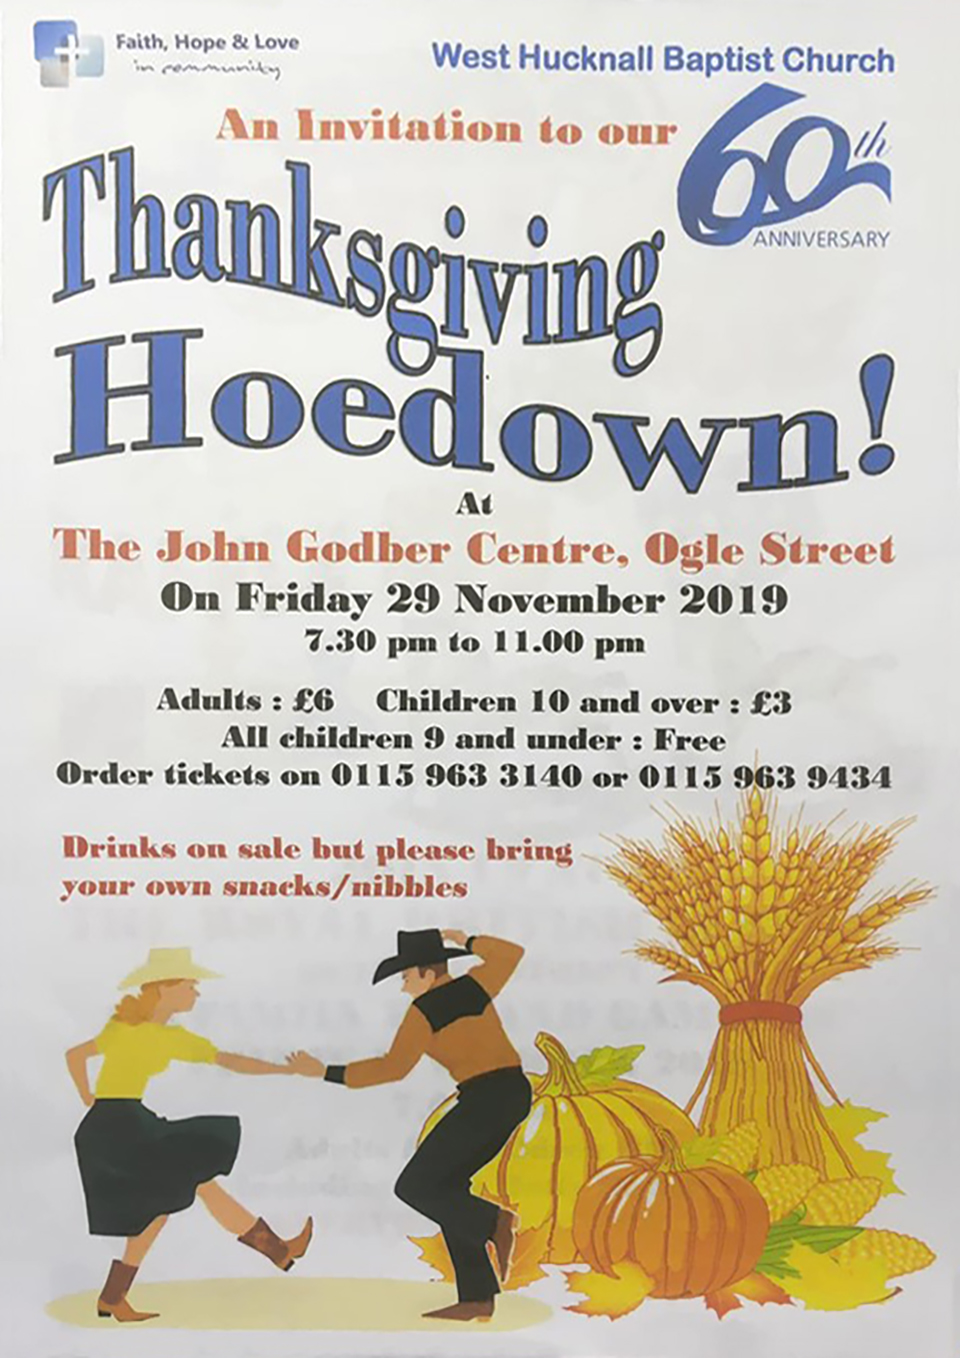 West Hucknall Baptist Church Thanksgiving Hoedown